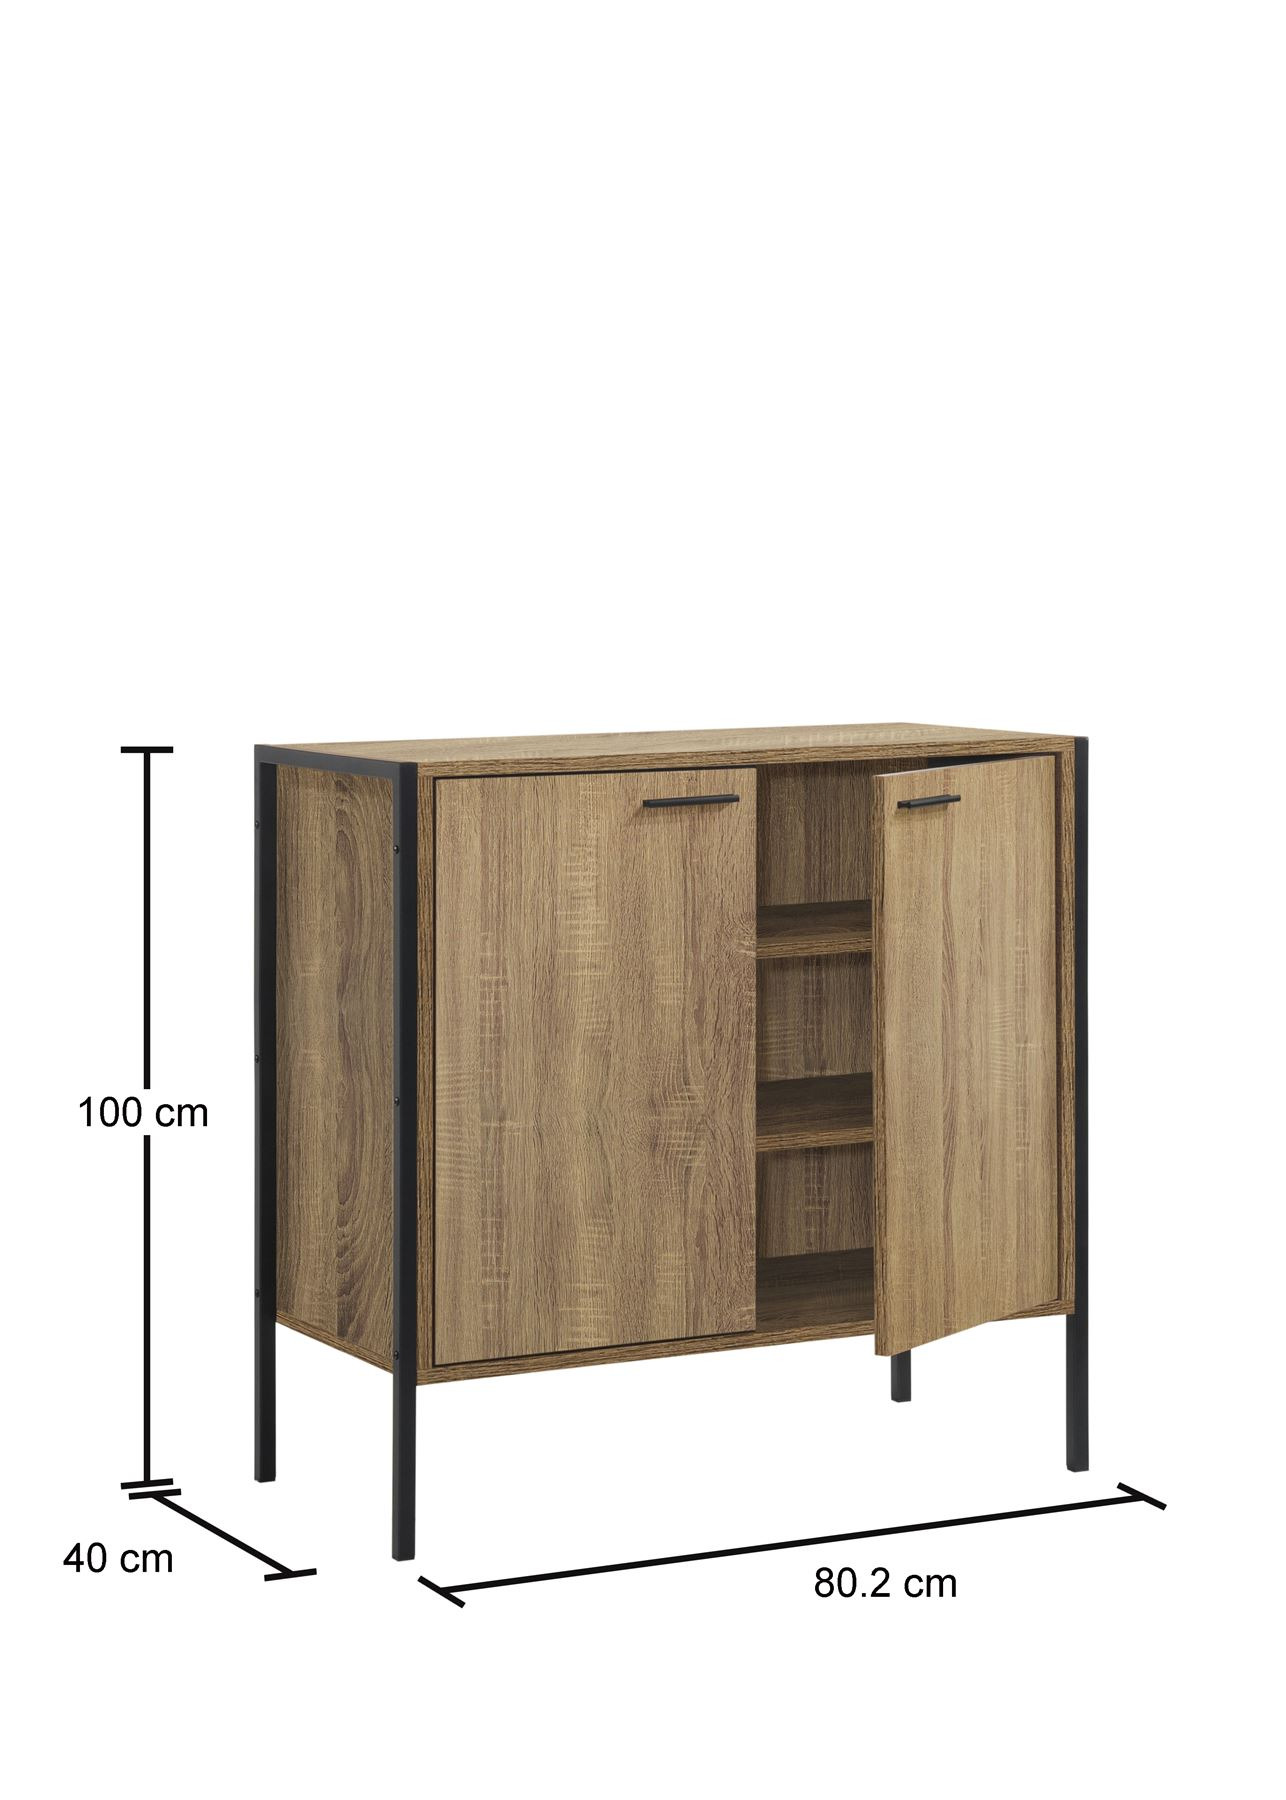 Storage Cabinet with Doors and Drawers New Details About Sideboard Storage Cupboard Cabinet Buffet 2 3 Doors Drawers Living Dining Room